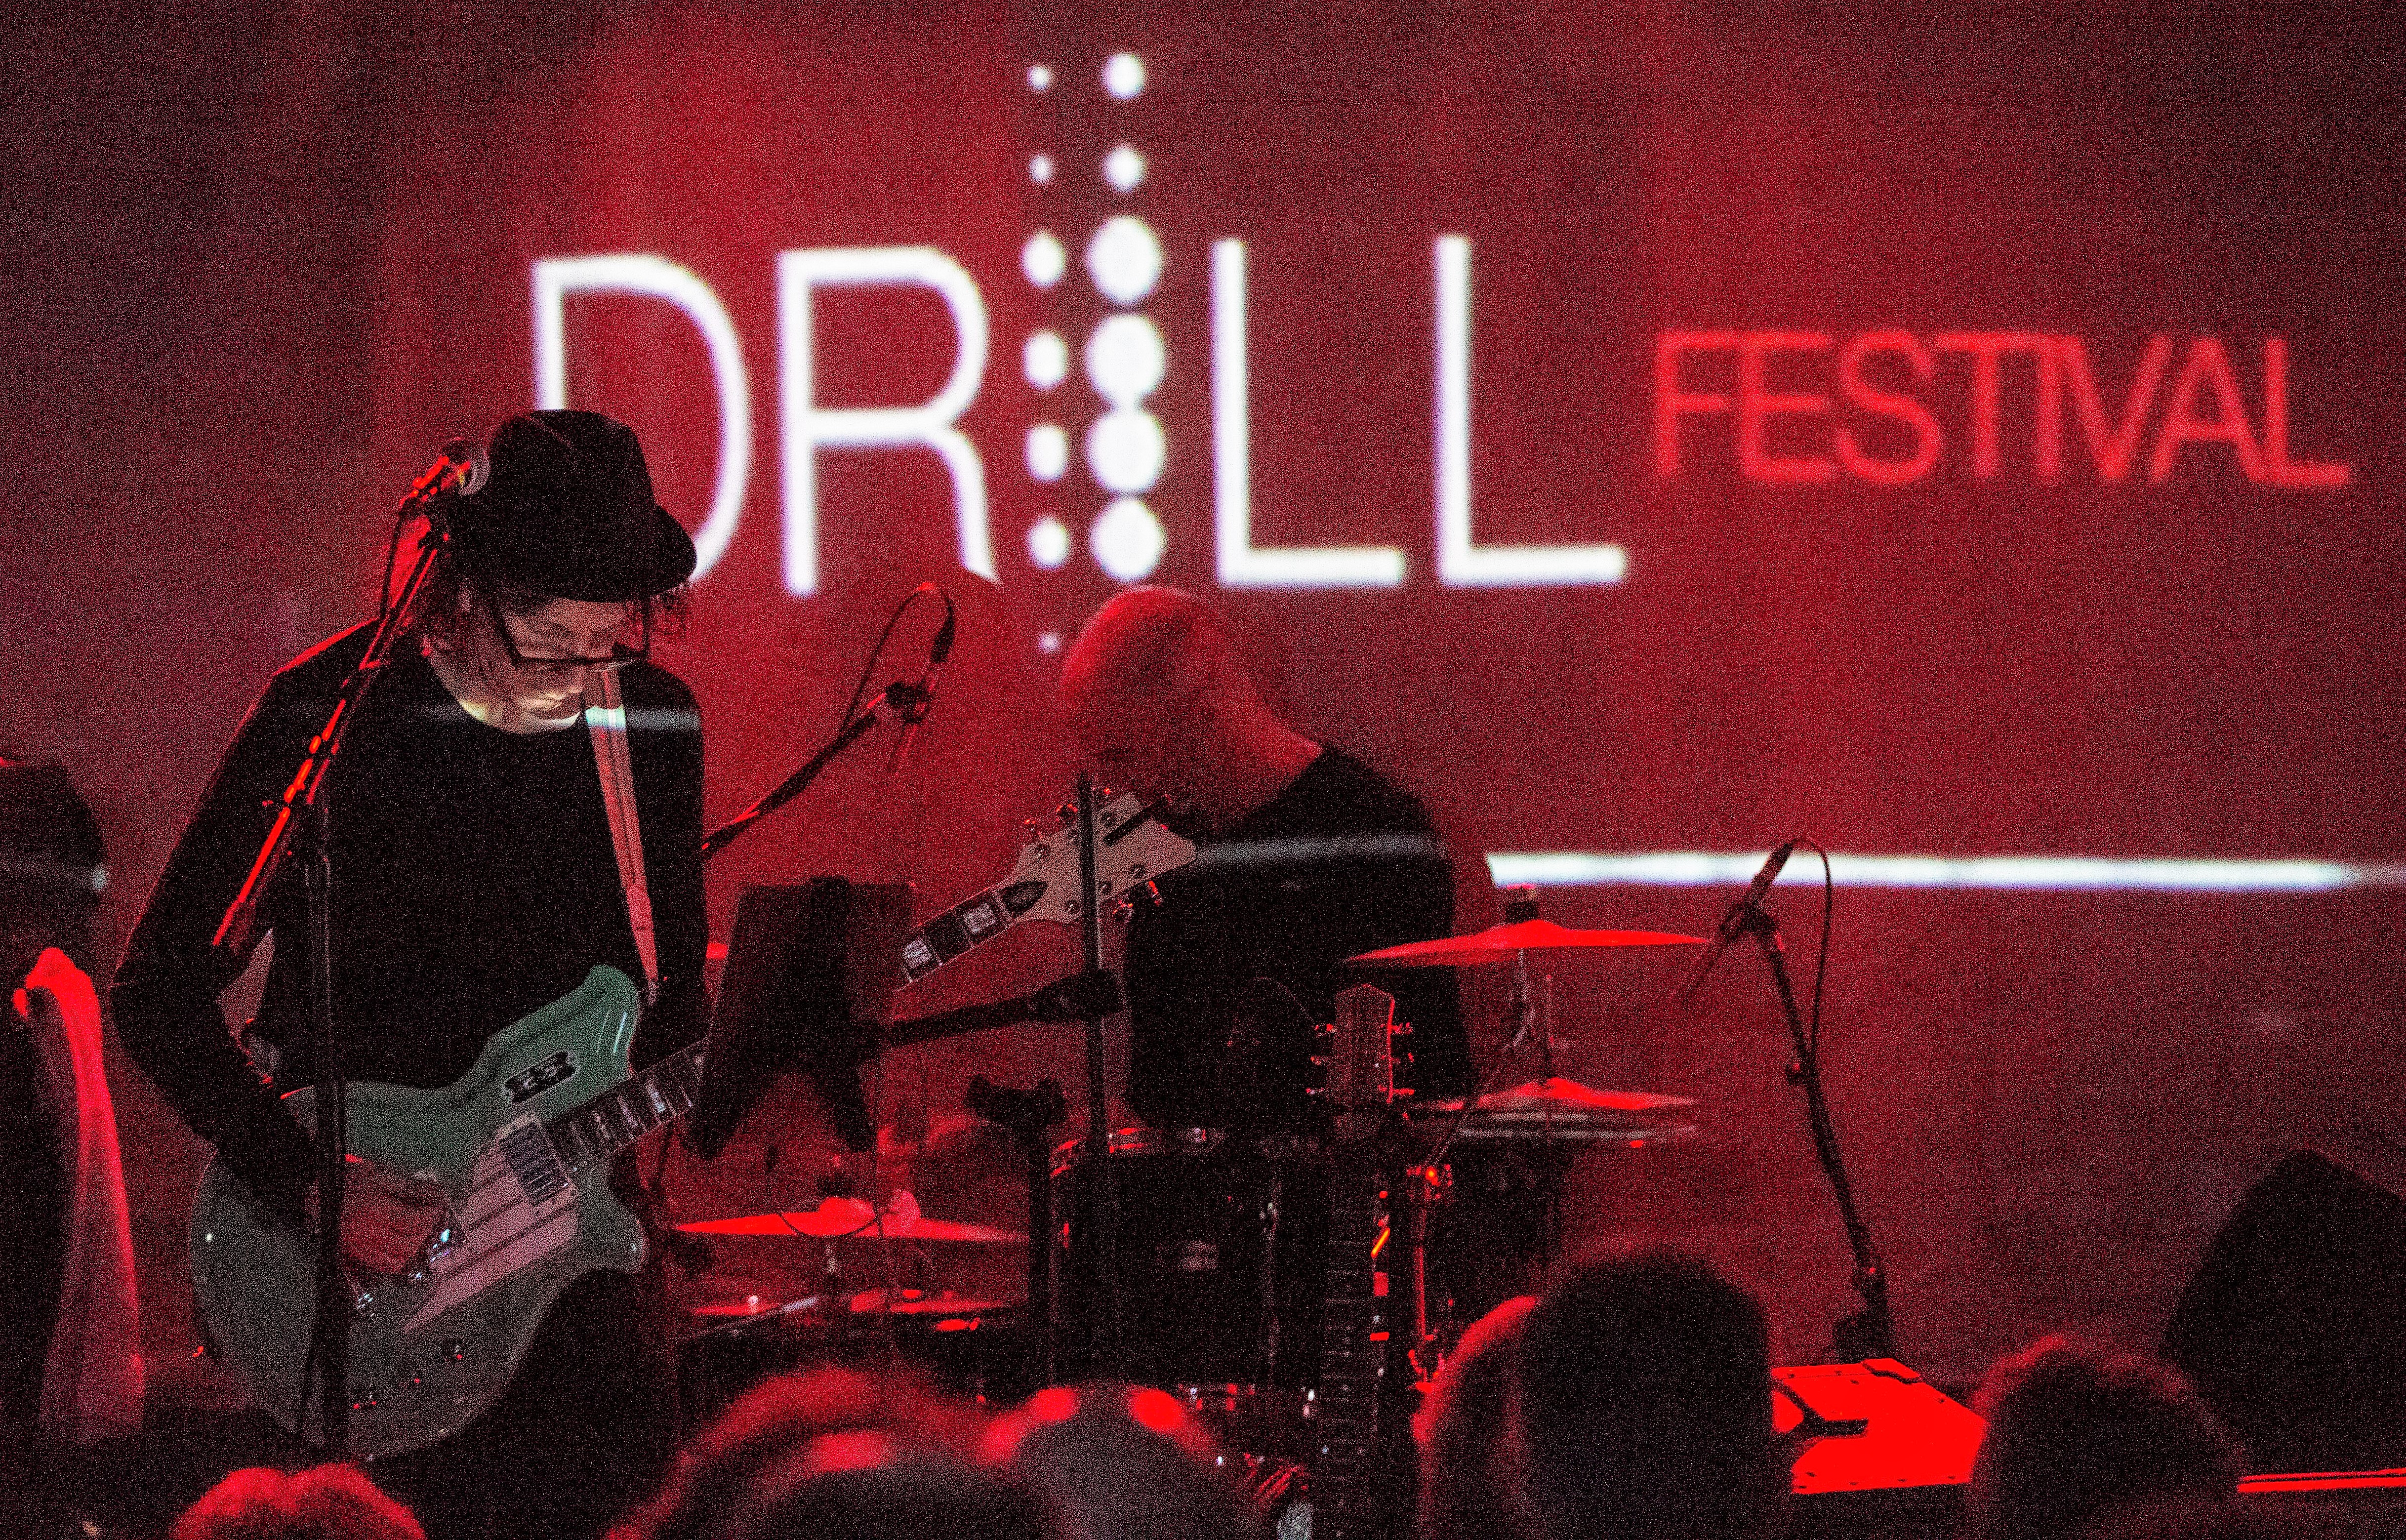 FESTIVAL REPORT – DRILL: Leeds